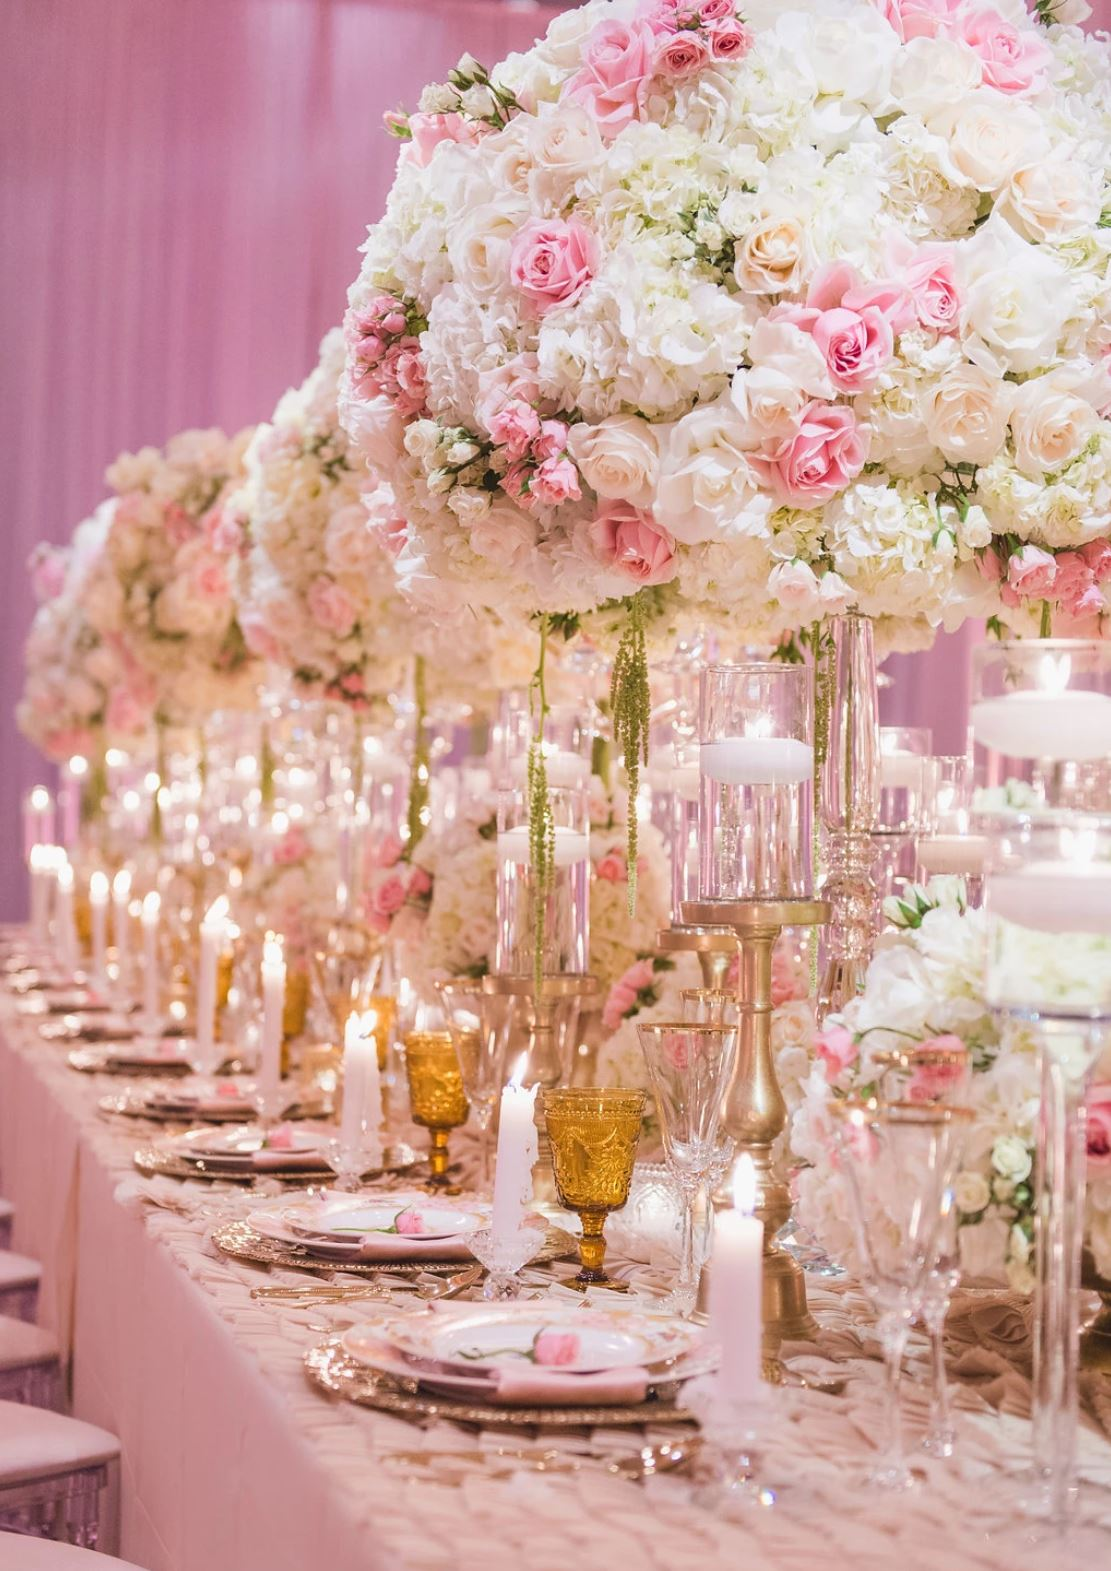 Pink and white wedding with tall centerpieces and gold accents. Photo by Chelsea Nicole.